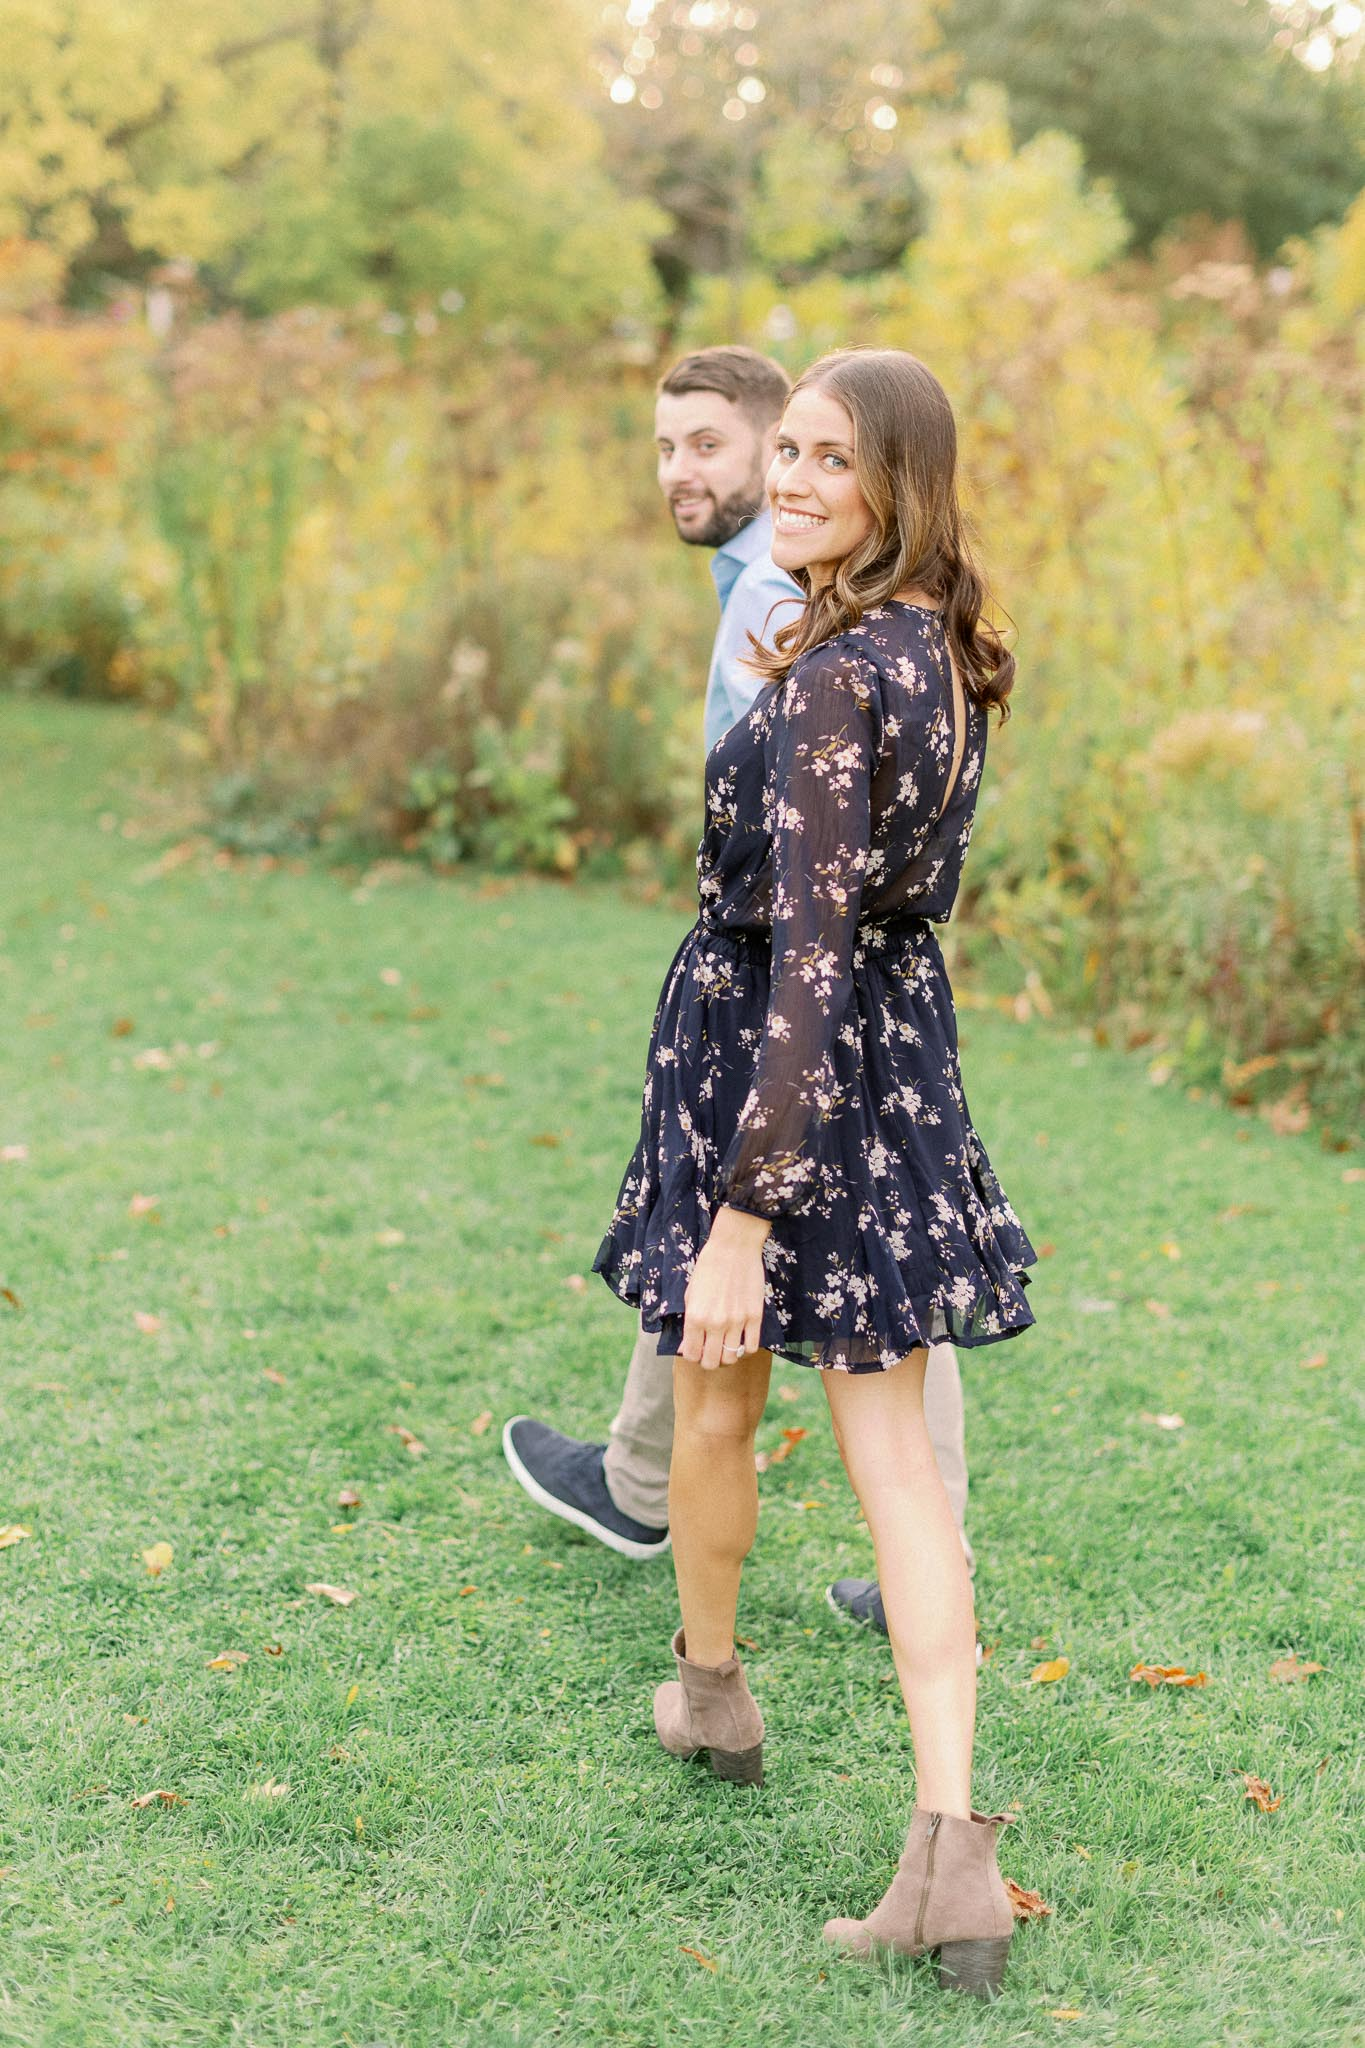 Chicago Fine Art Film Photographer – Lincoln Park Engagement Photos-39